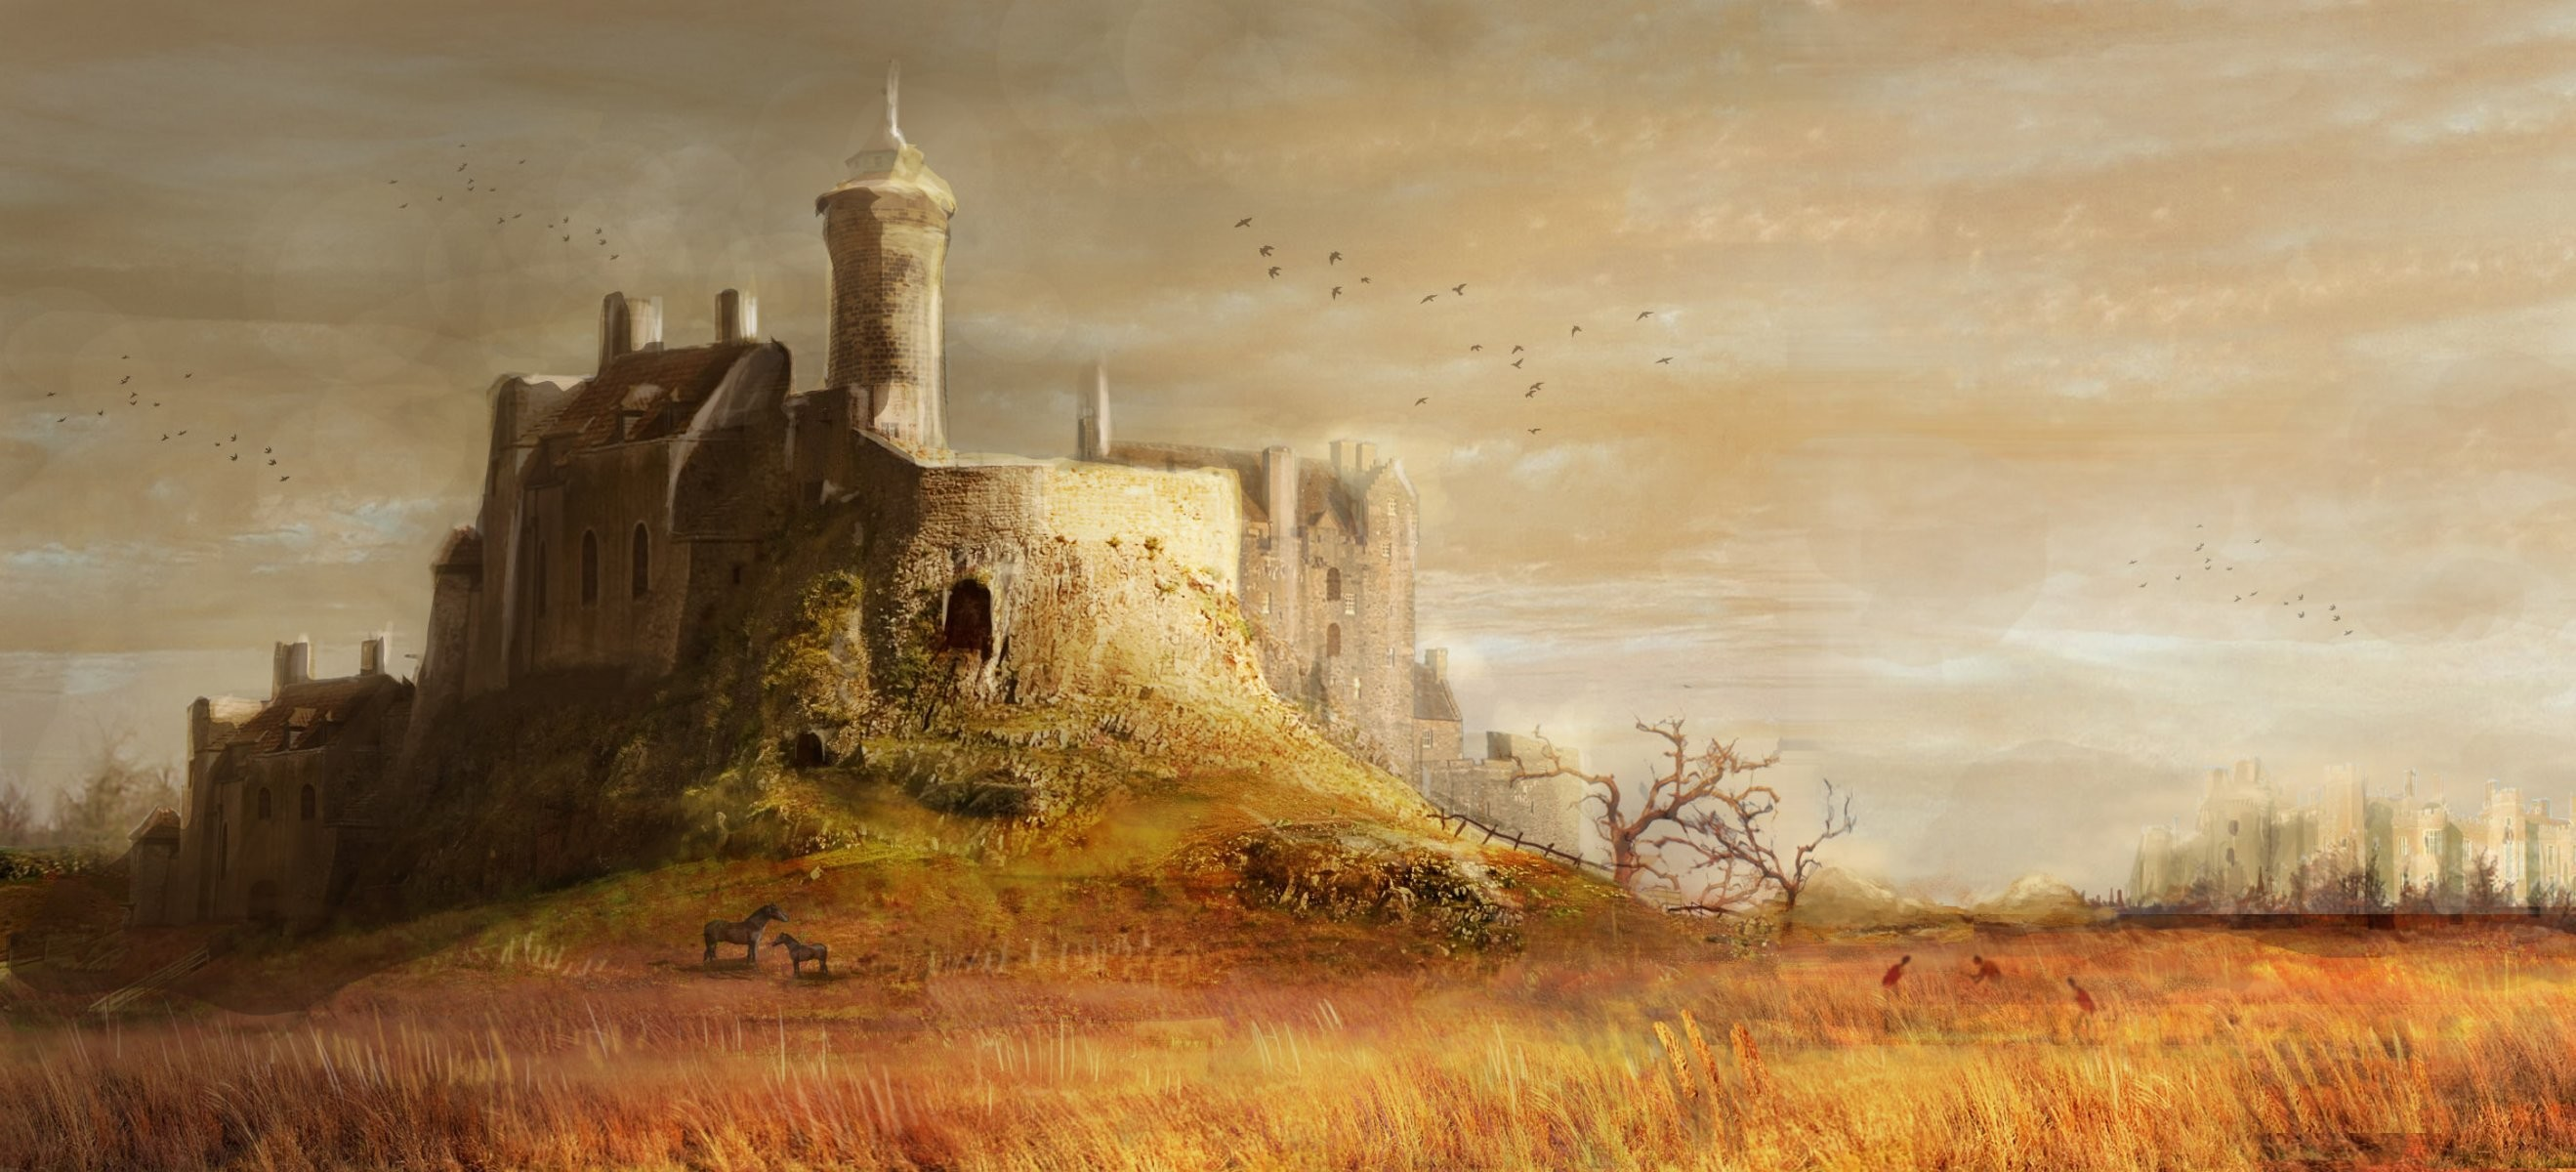 2638x1200 medieval castle hill tower tree grass horses